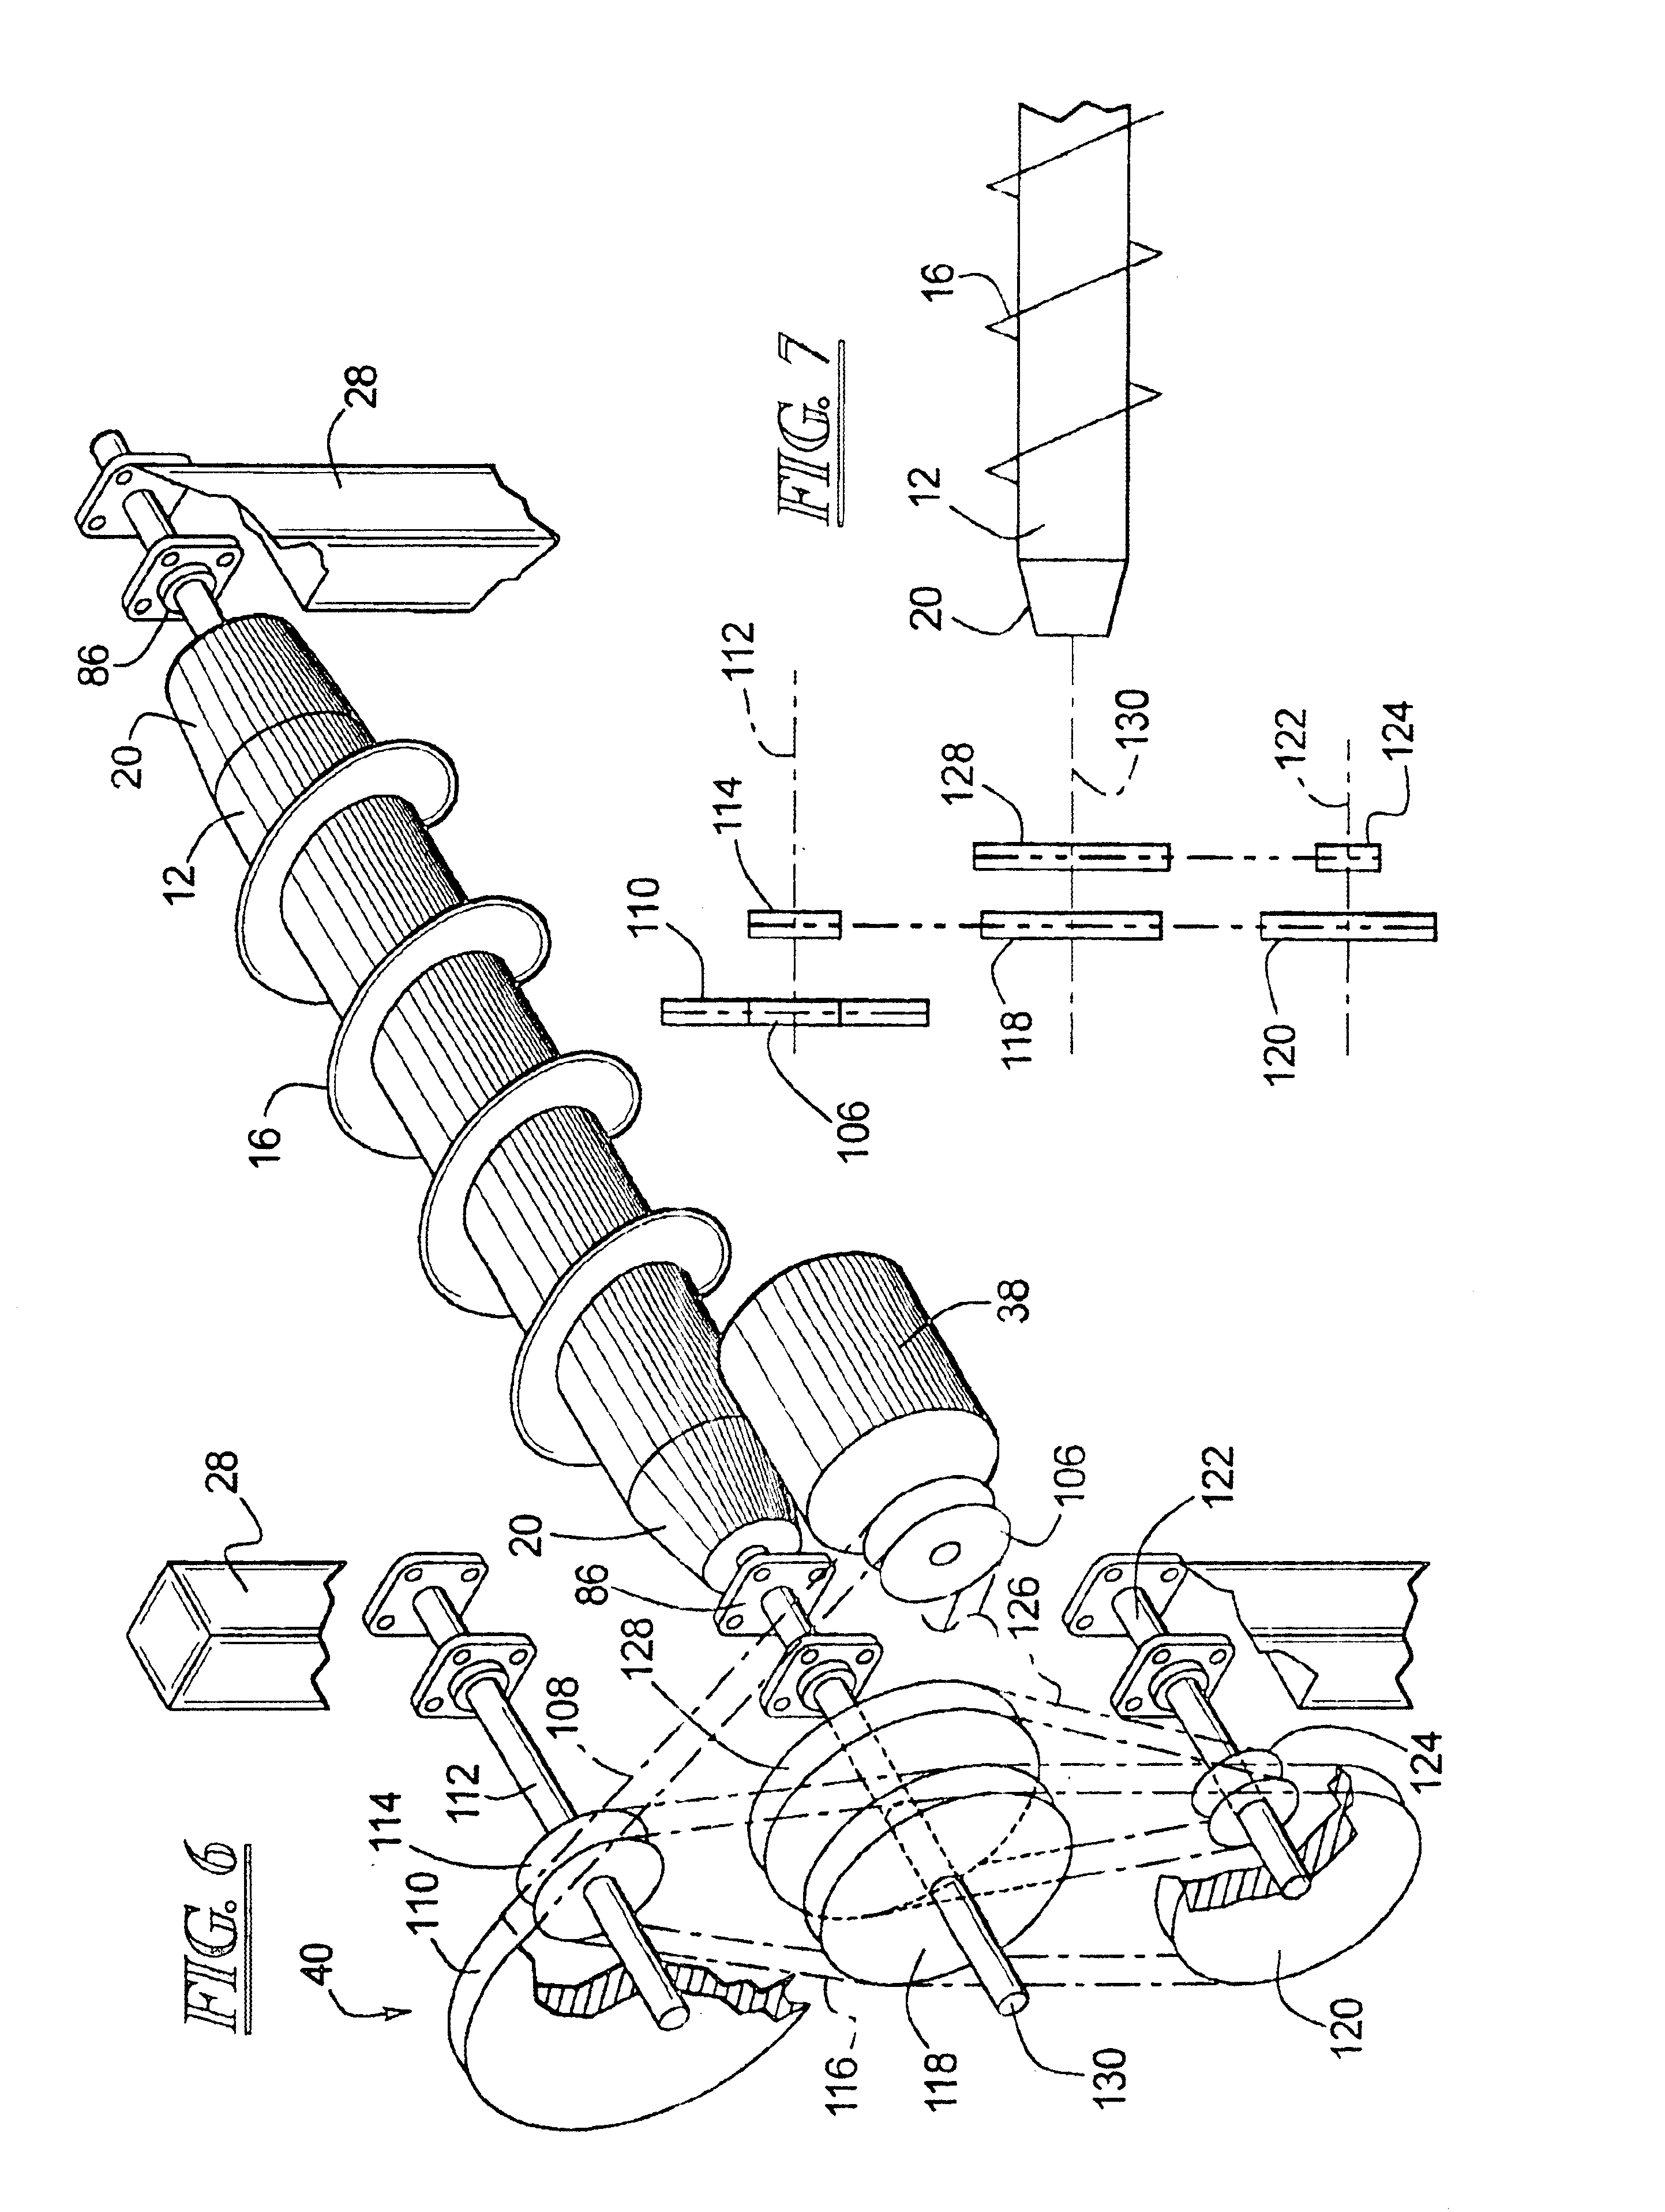 Us06899263 20050531 d00003 patent us6899263 auger welder station and method patents on welder schematic